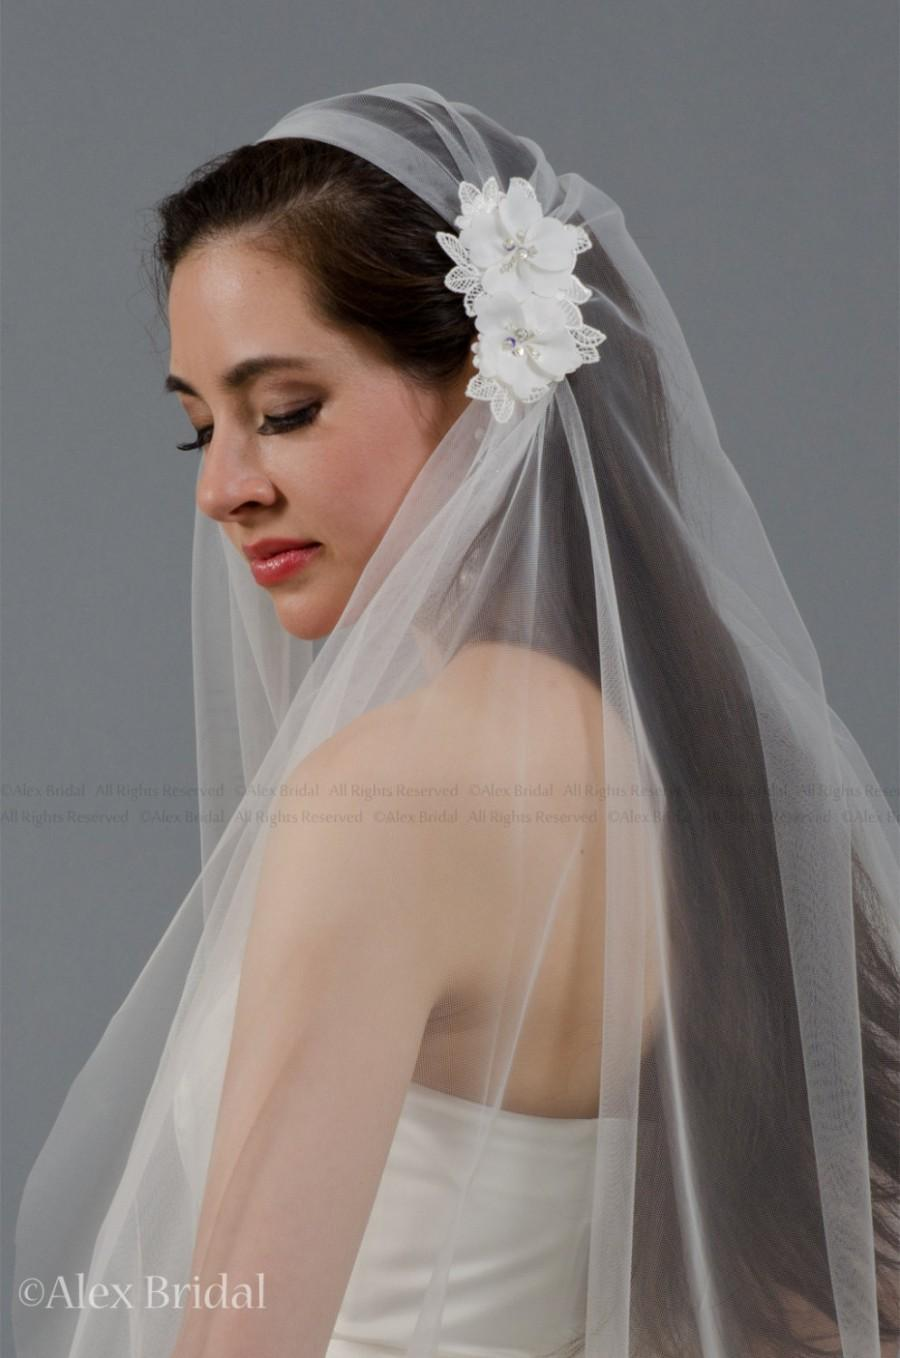 Mariage - Ivory juliet cap wedding veil with venice lace flowers - elbow length